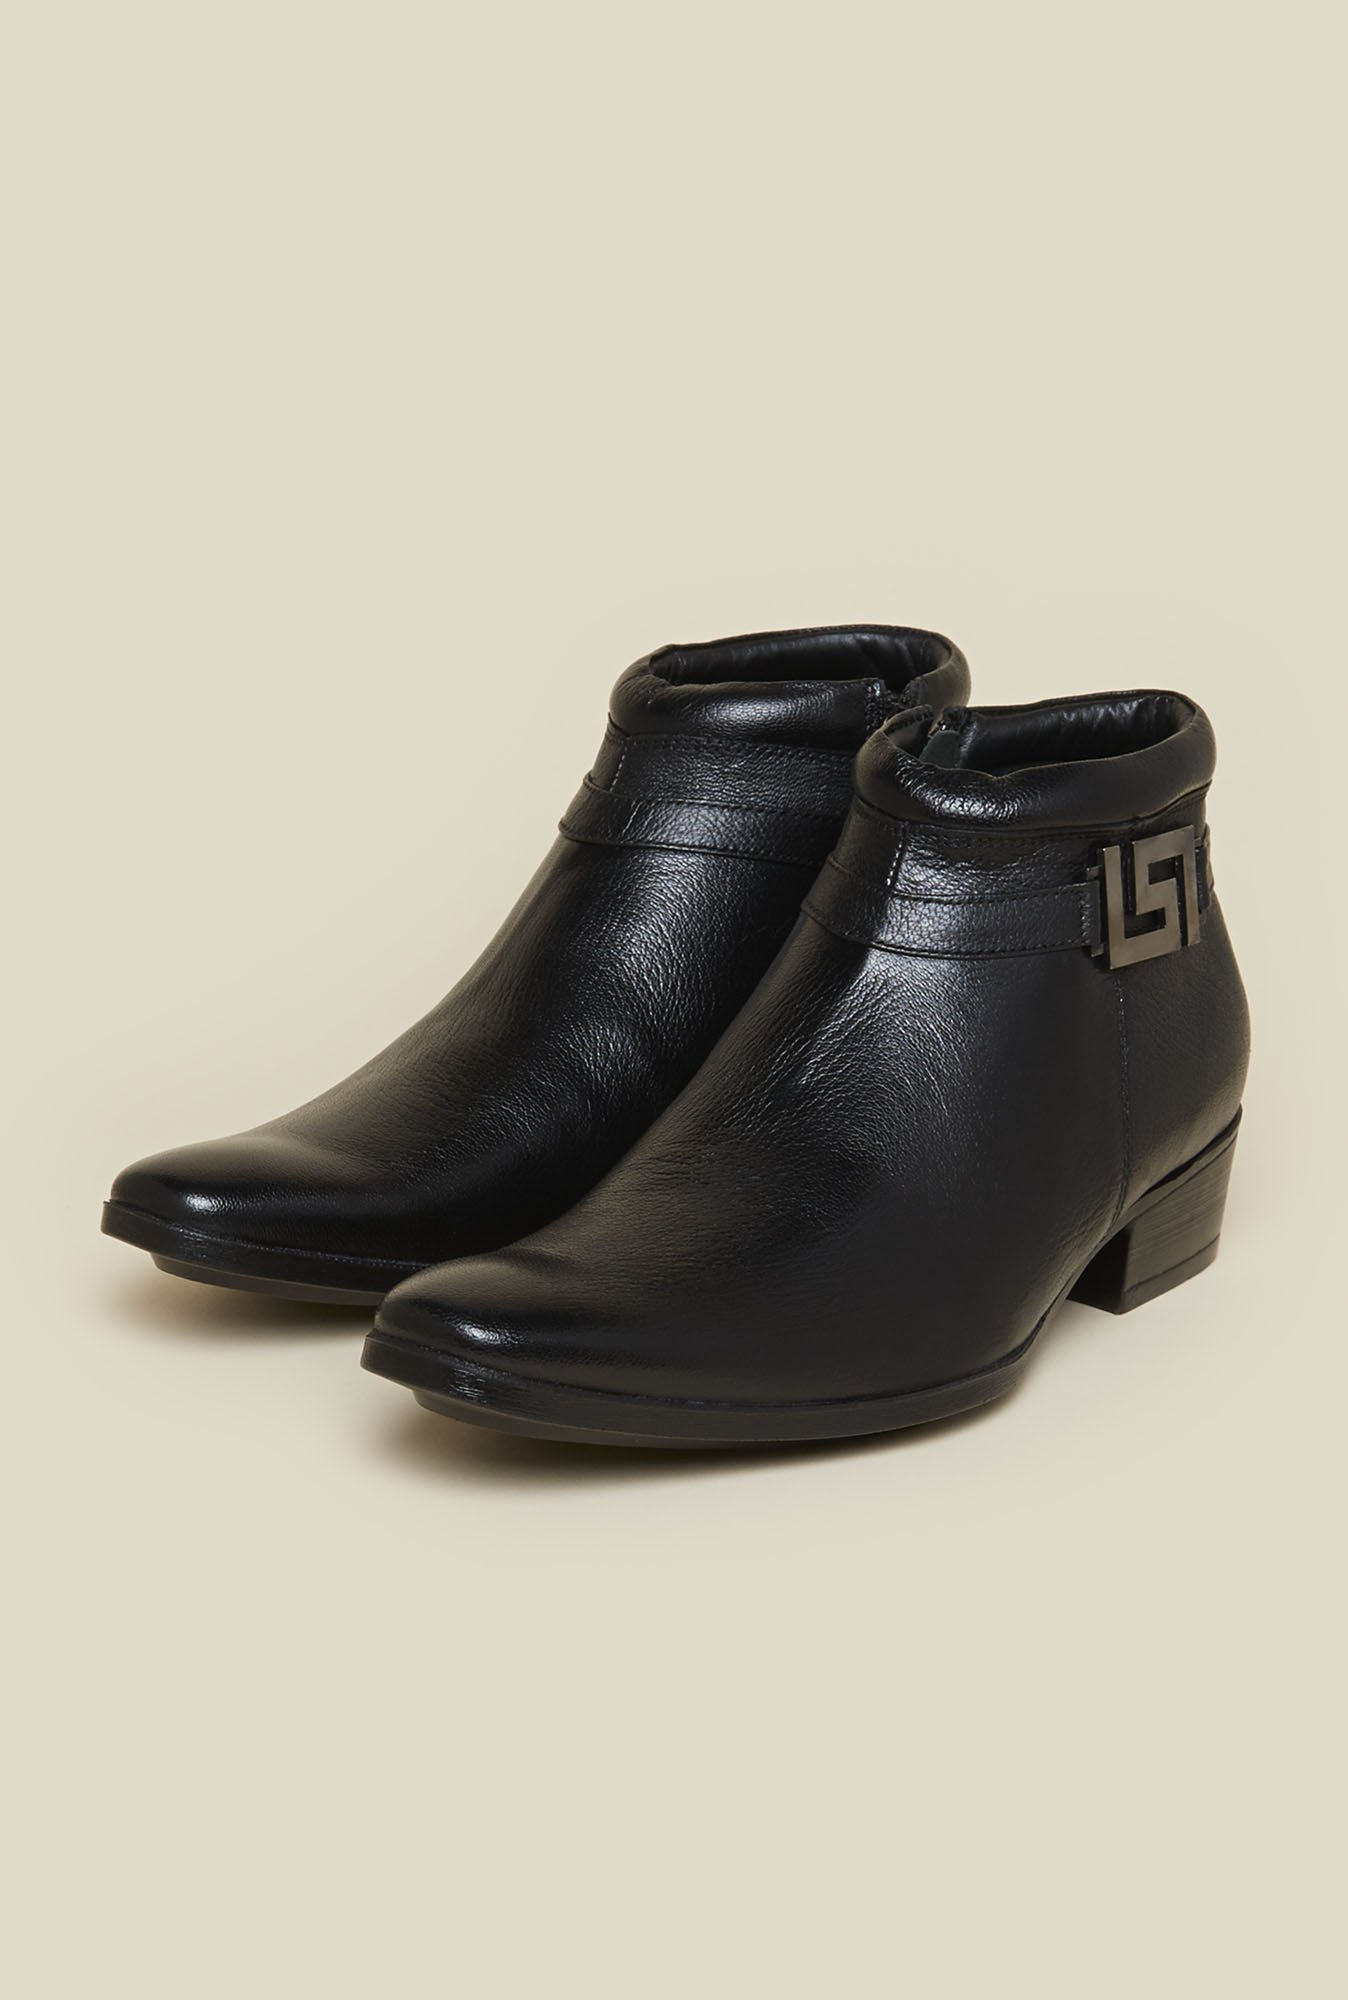 Mochi Black Leather Casual Boots